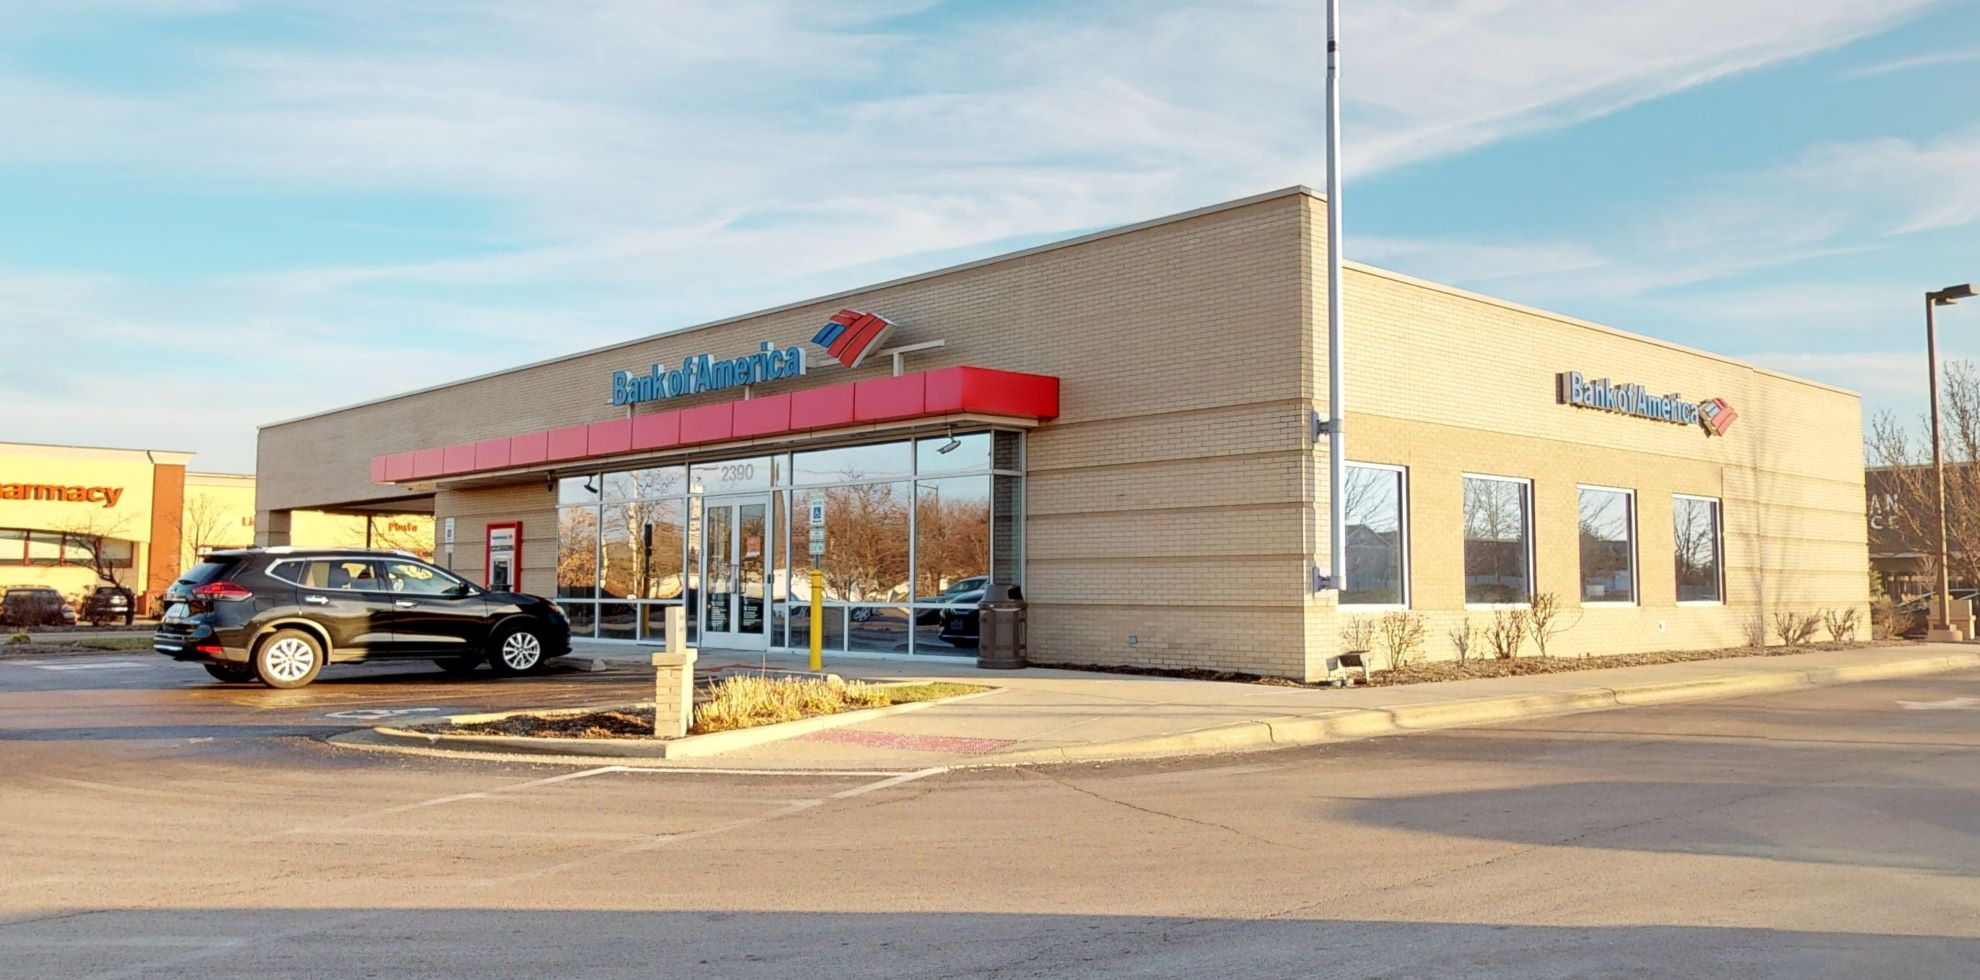 Bank of America financial center with drive-thru ATM   2390 W Indian Trl, Aurora, IL 60506